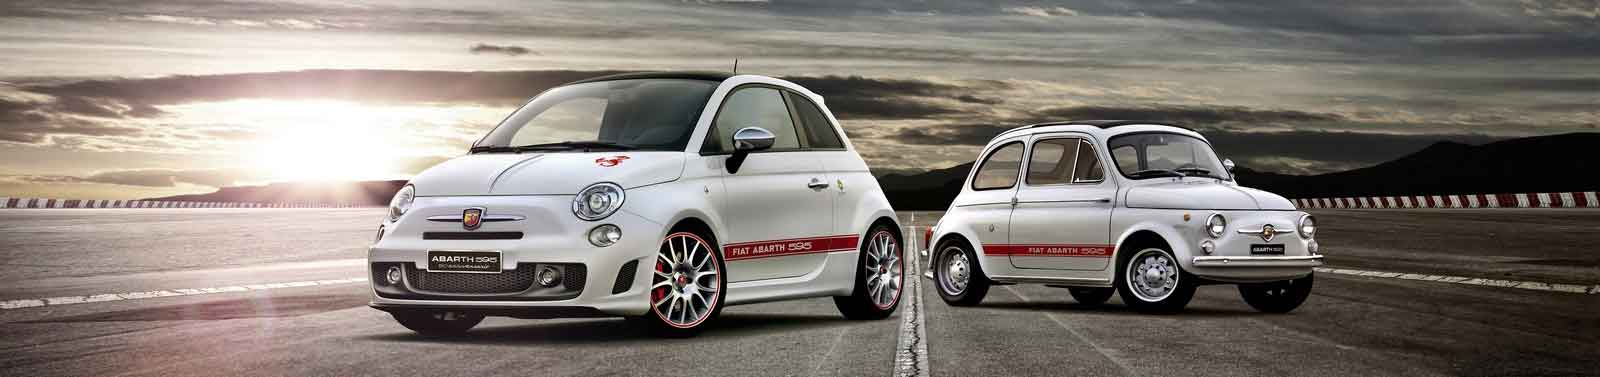 Abarth-595_wide